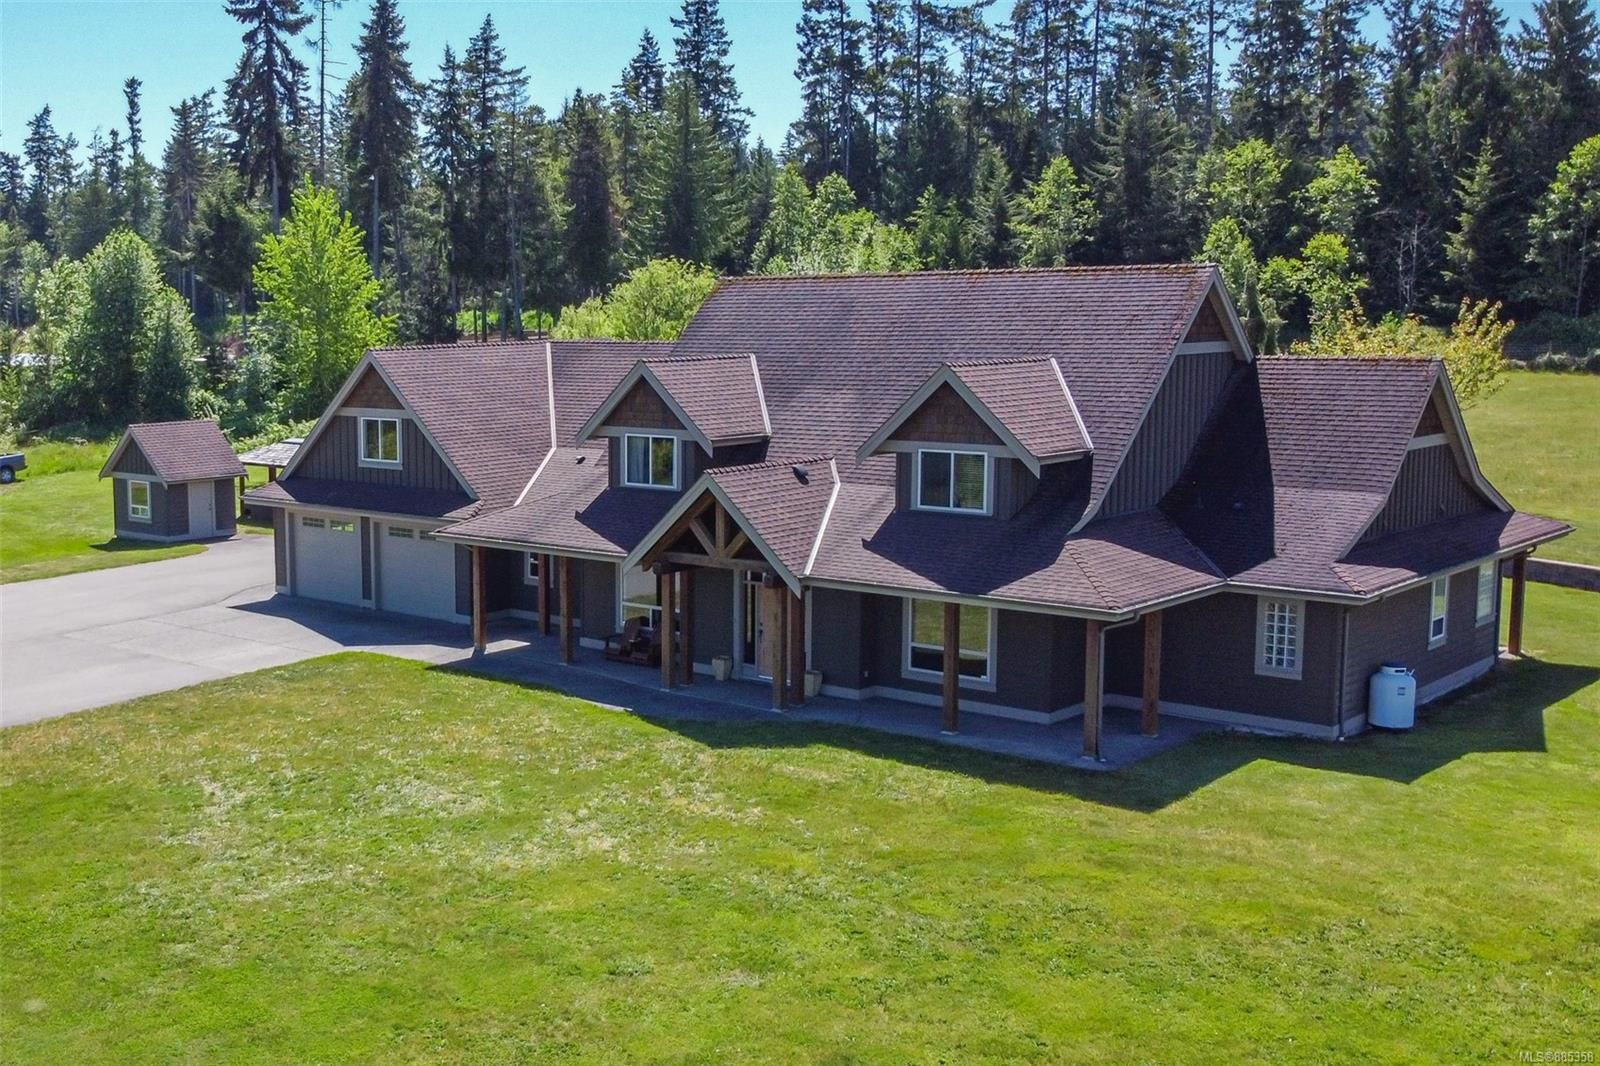 Photo 65: Photos: 2850 Peters Rd in : PQ Qualicum Beach House for sale (Parksville/Qualicum)  : MLS®# 885358